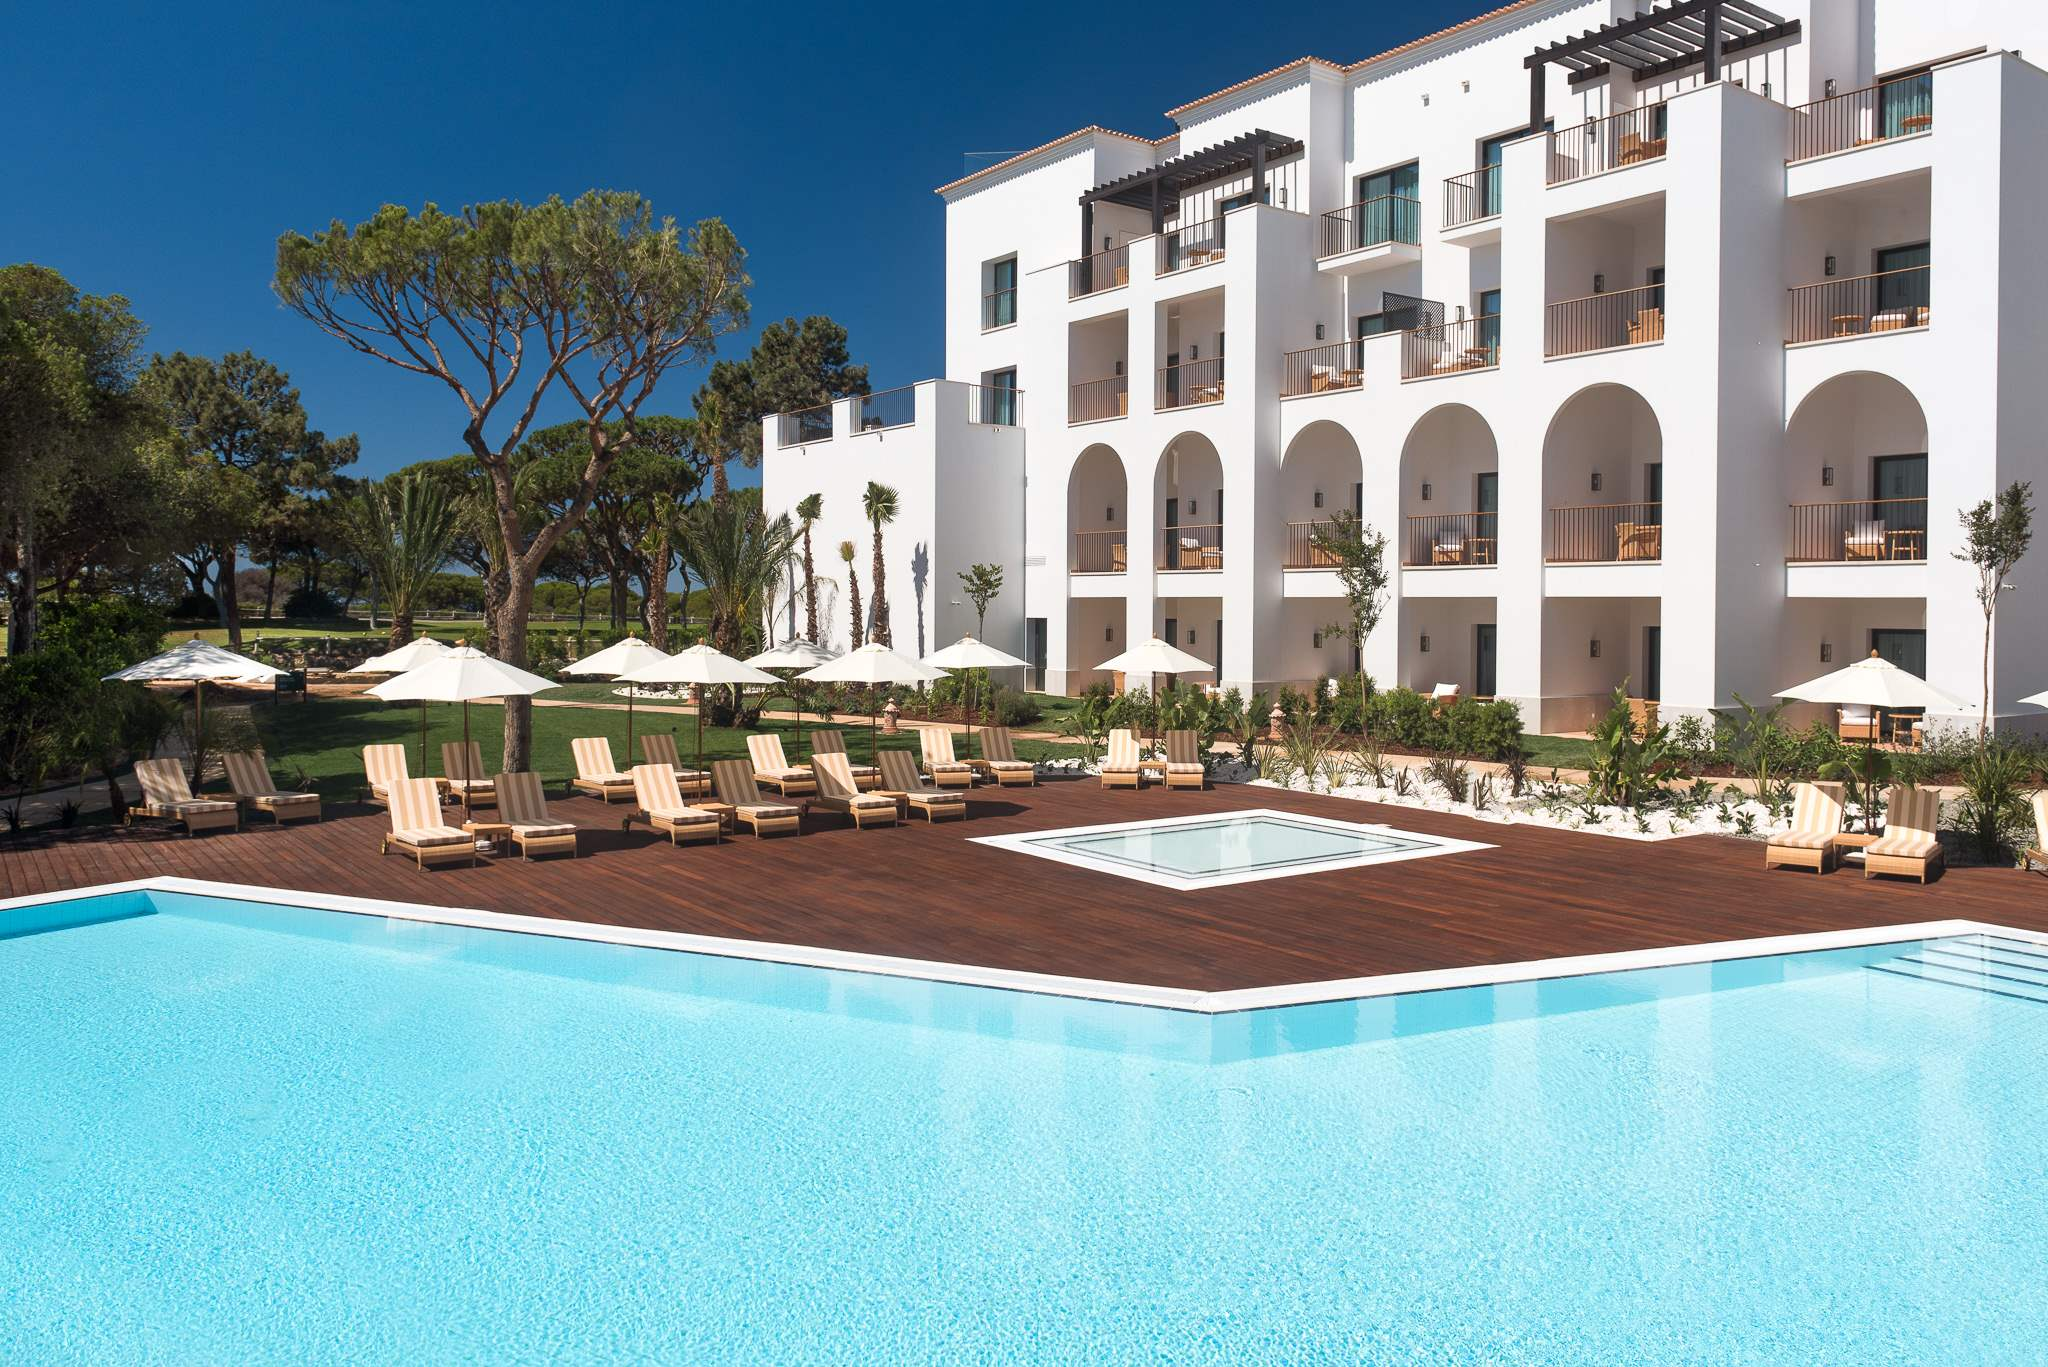 Pine Cliffs Ocean Suites, One Bedroom Apt, Penthouse Apt, 1 bedroom apartment in Pine Cliffs Resort, Algarve Photo #1